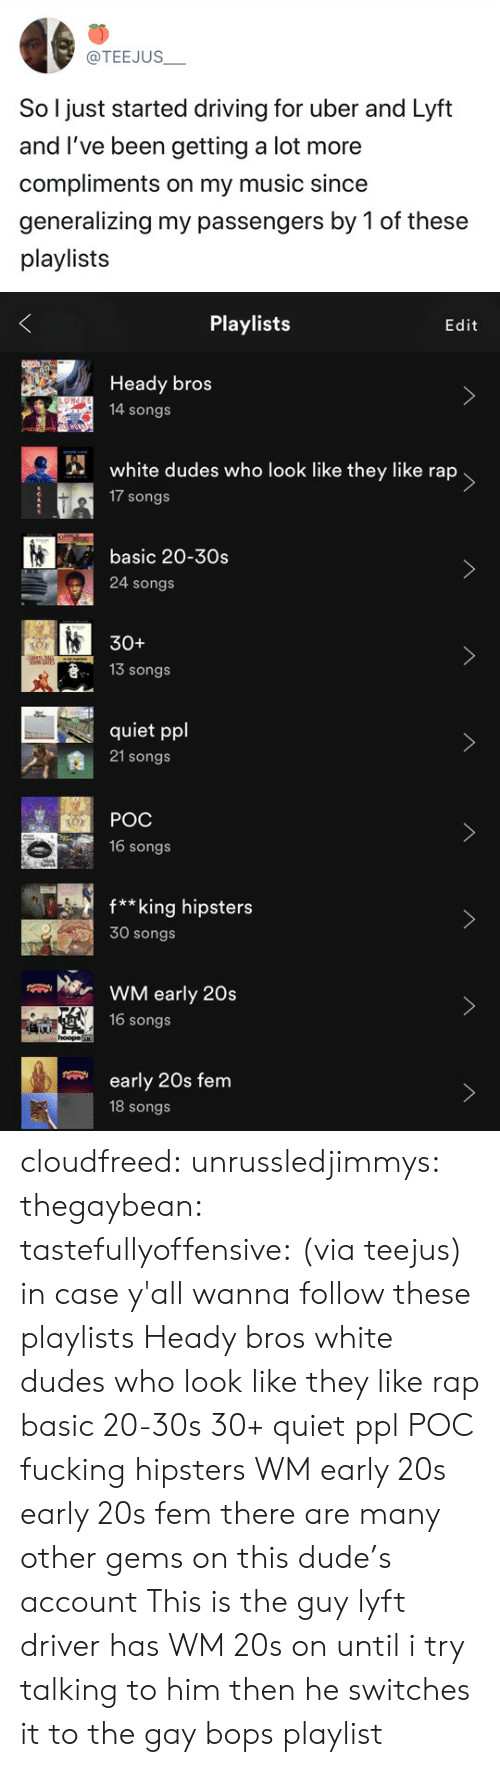 Passengers: @TEEJUS  So l just started driving for uber and Lyft  and I've been getting a lot more  compliments on my music since  generalizing my passengers by 1 of these  playlists   Playlists  Edit  Heady bros  14 songs  white dudes who look like they like rap  17 songs  basic 20-30s  >  24 songs  30+  13 Songs  quiet ppl  21 songs   POC  16 songs  f**king hipsters  30 songs  WM early 20s  16 songs  hoopa  early 20s fem  18 songs cloudfreed:  unrussledjimmys:  thegaybean:  tastefullyoffensive: (via teejus)  in case y'all wanna follow these playlists  Heady bros  white dudes who look like they like rap  basic 20-30s  30+  quiet ppl  POC  fucking hipsters  WM early 20s  early 20s fem there are many other gems on this dude's account  This is the guy  lyft driver has WM 20s on until i try talking to him then he switches it to the gay bops playlist